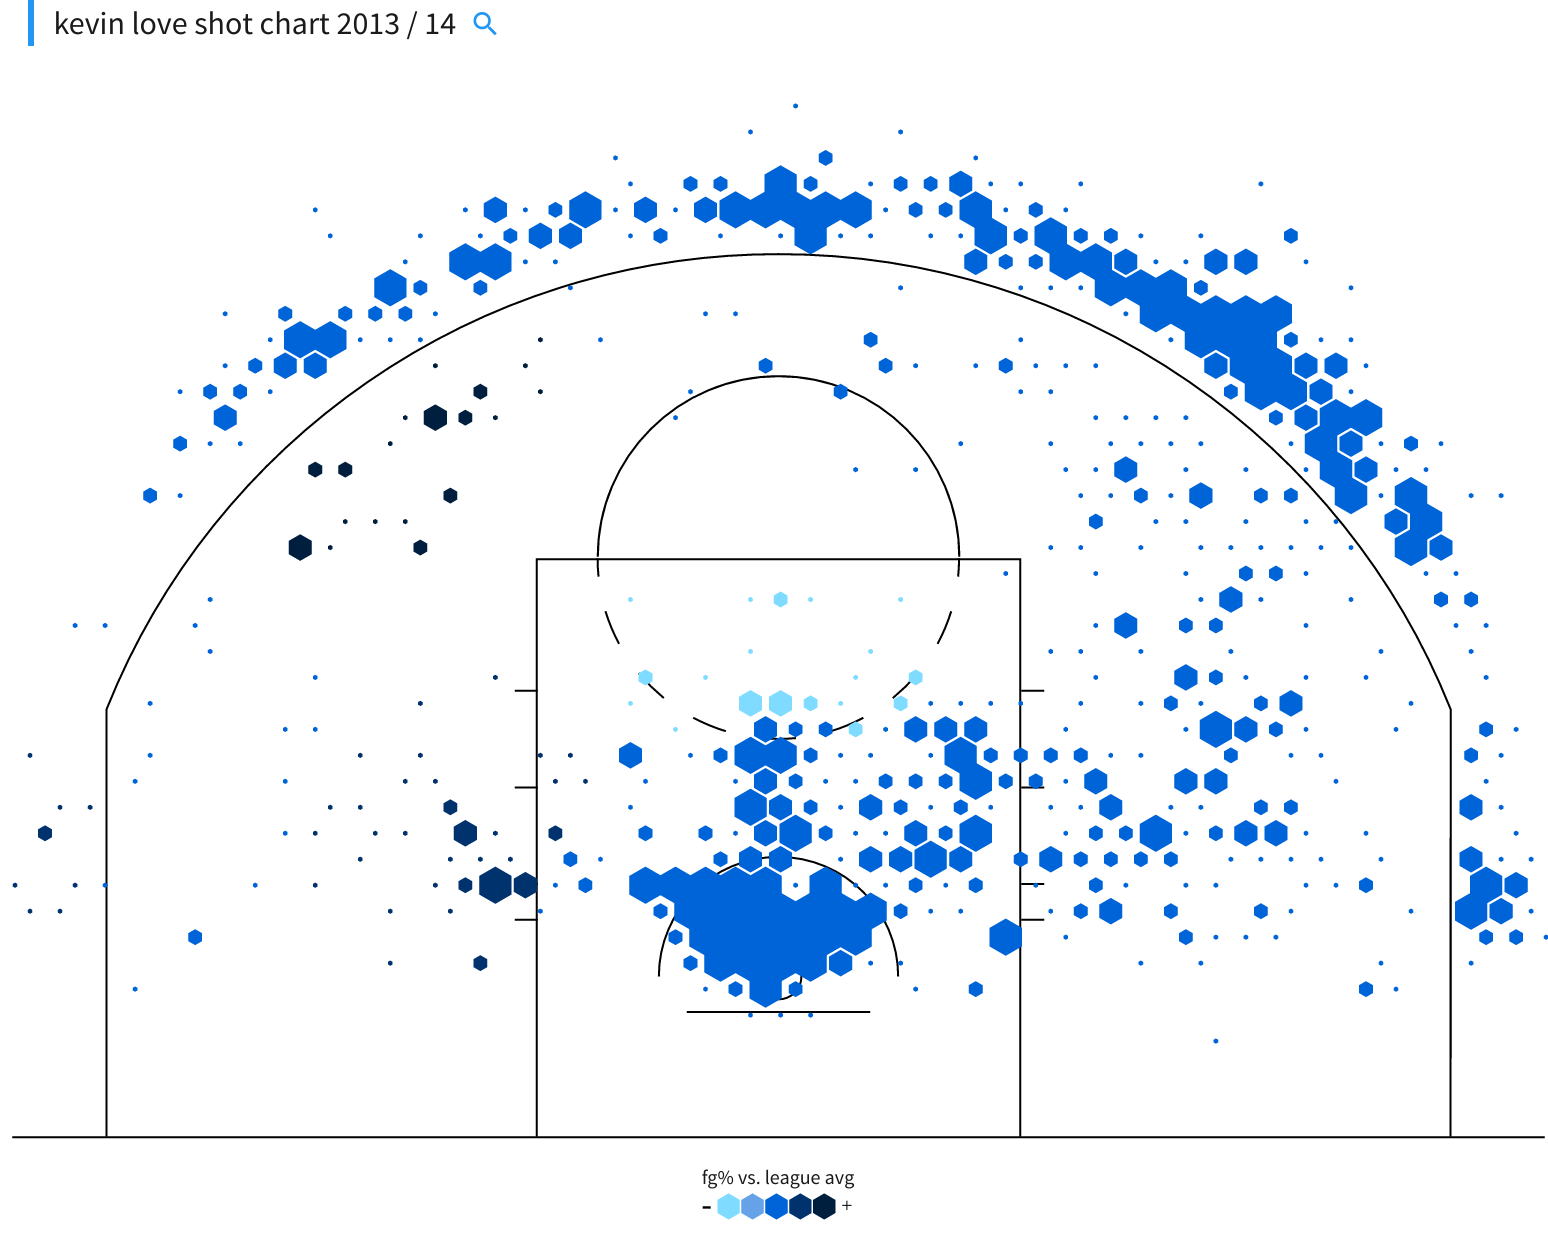 Kevin Love shot chart 2013-14